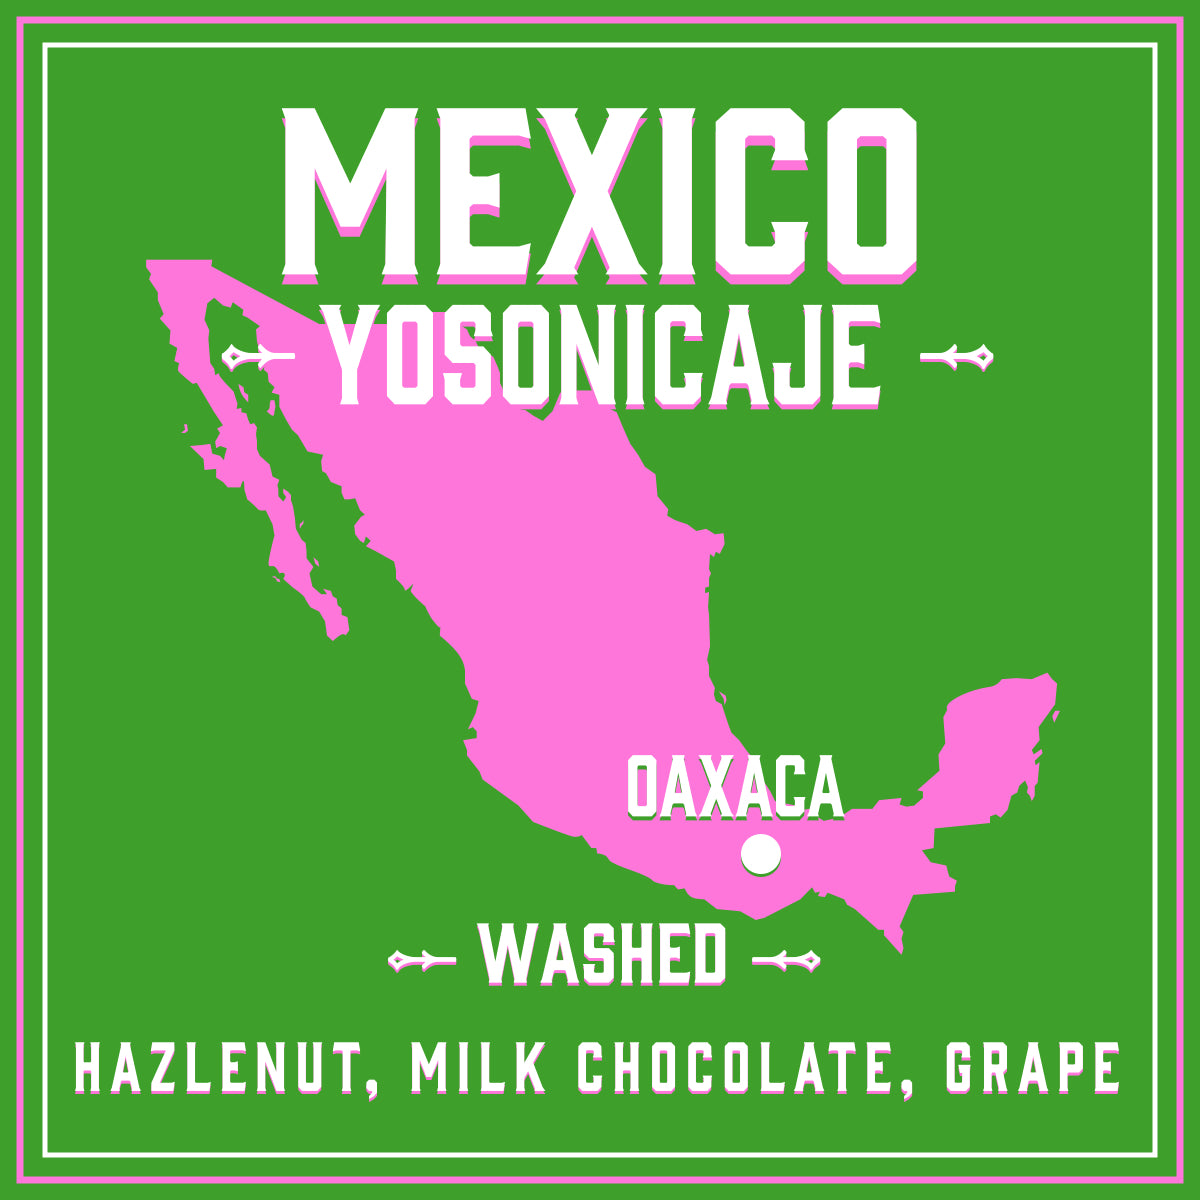 Mexico Yosonicaje / 1lb